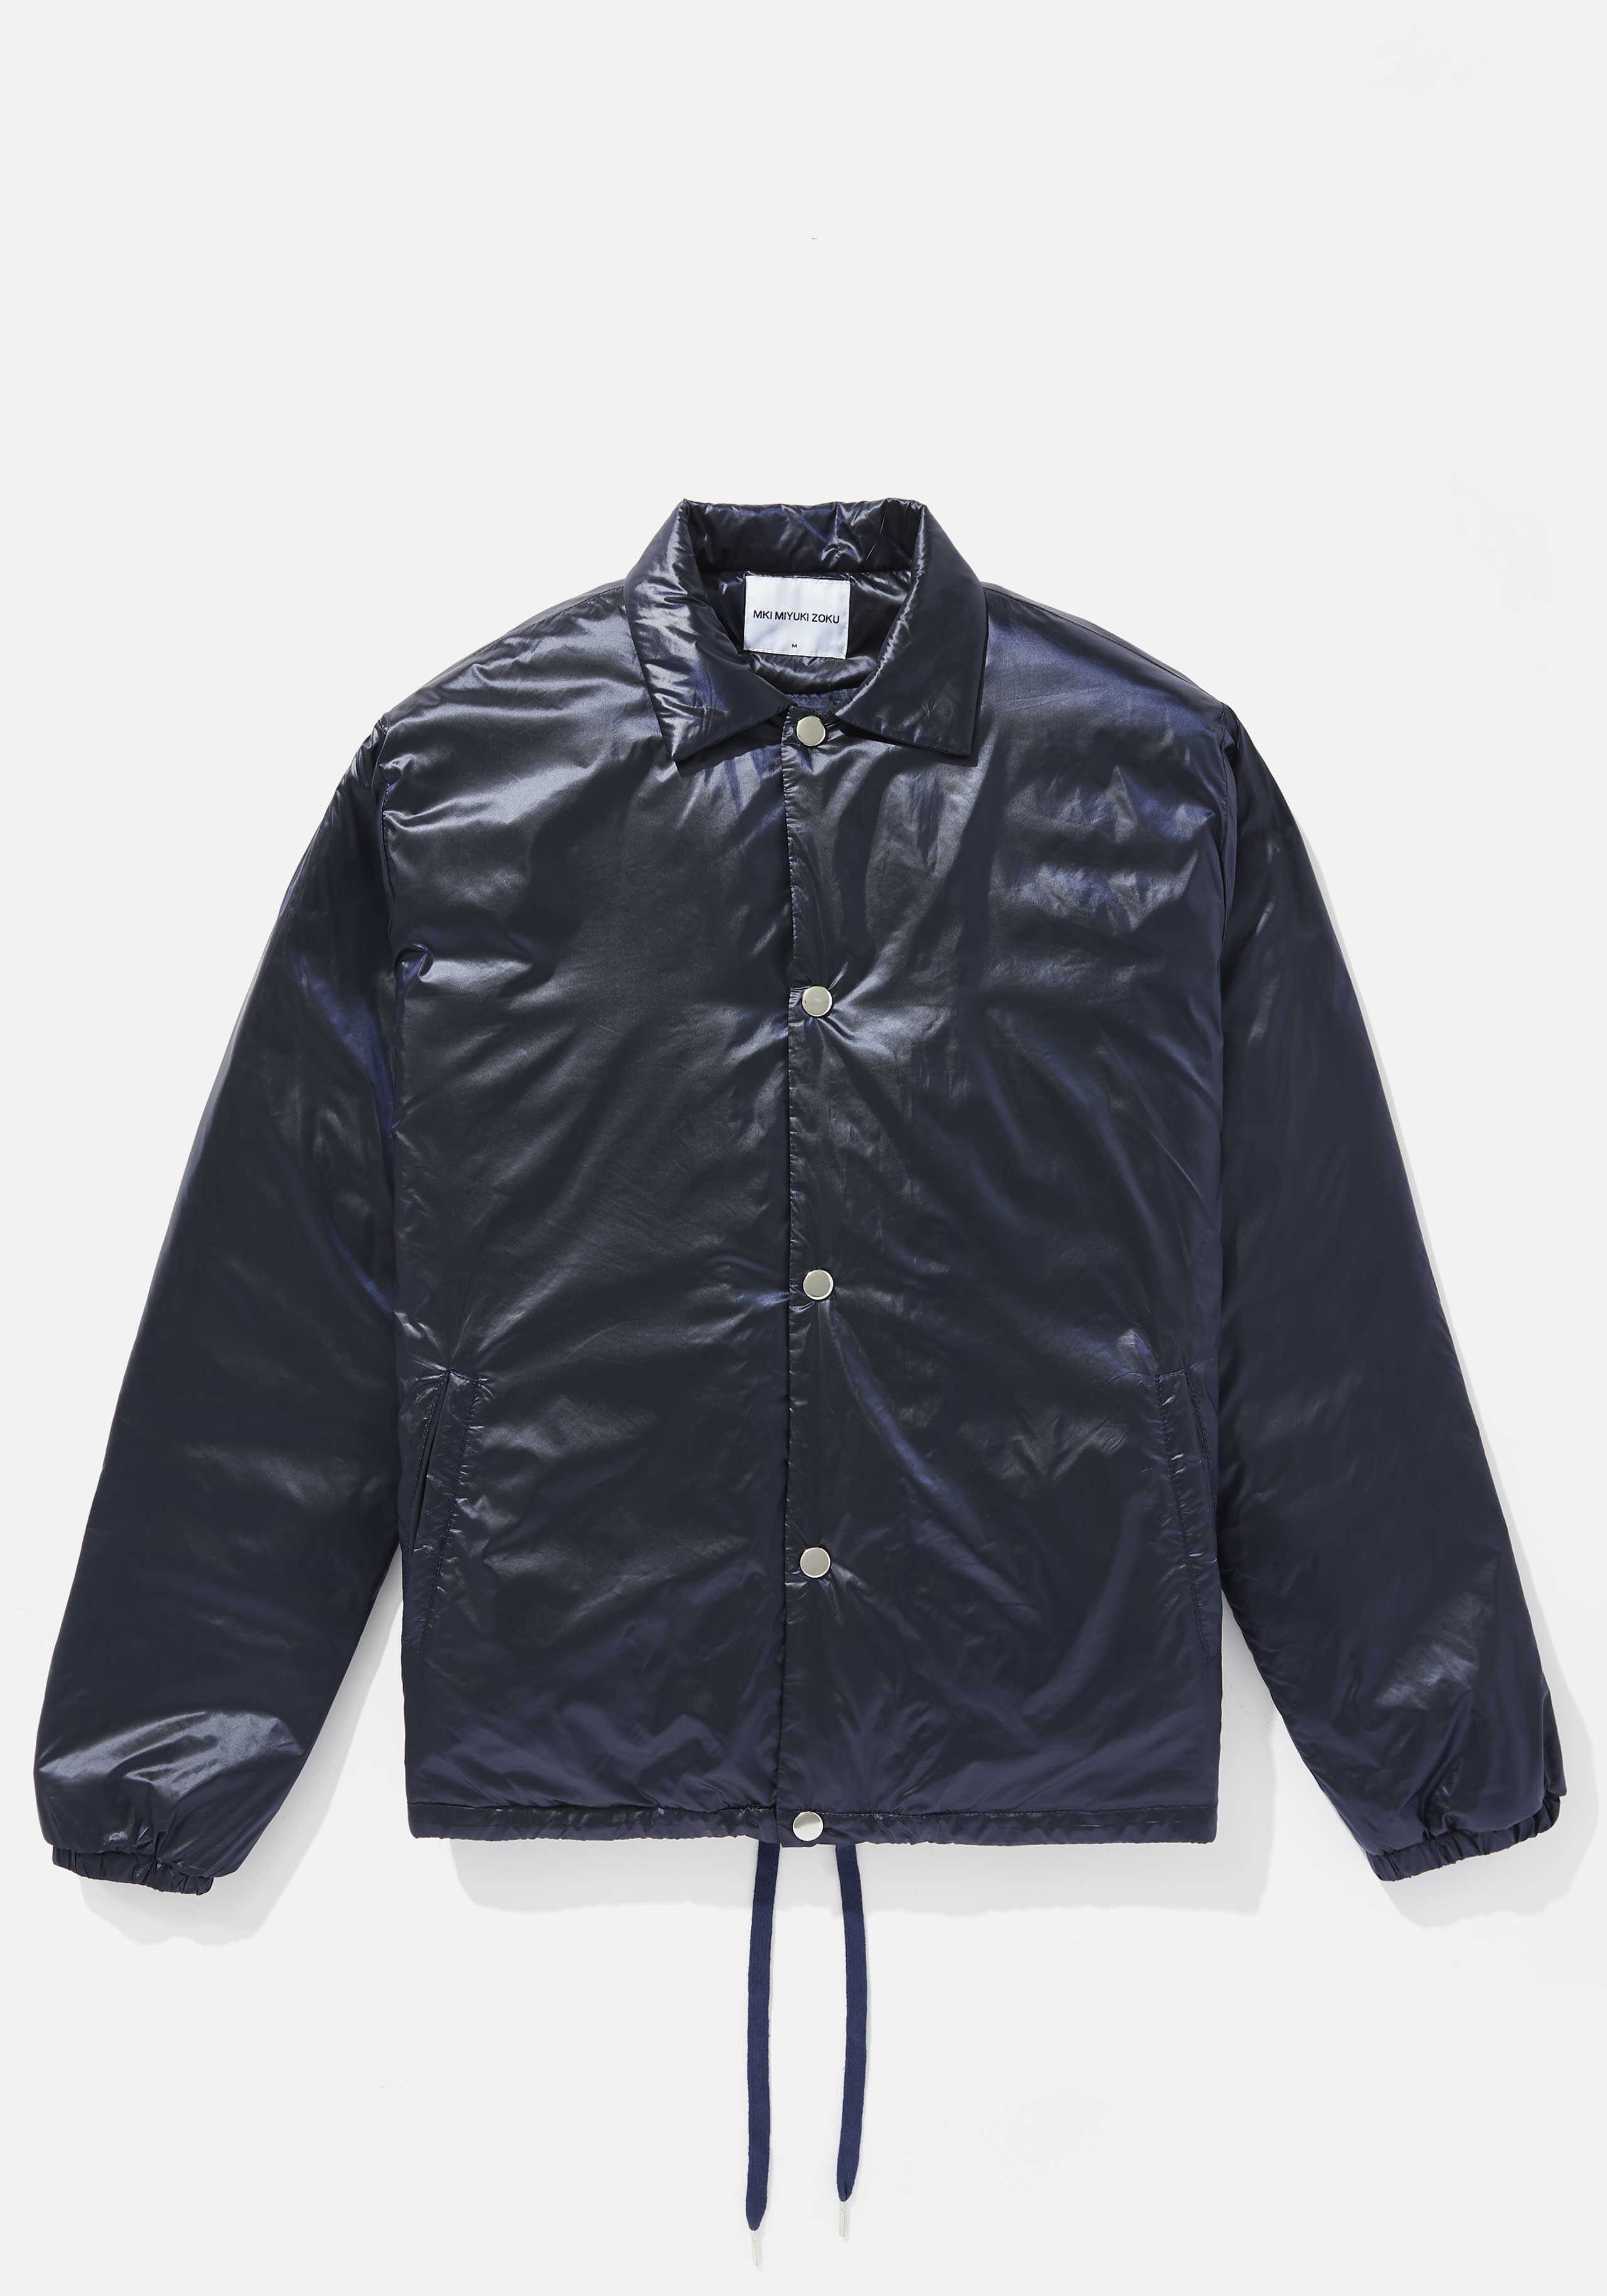 mki padded nylon coach jacket 1